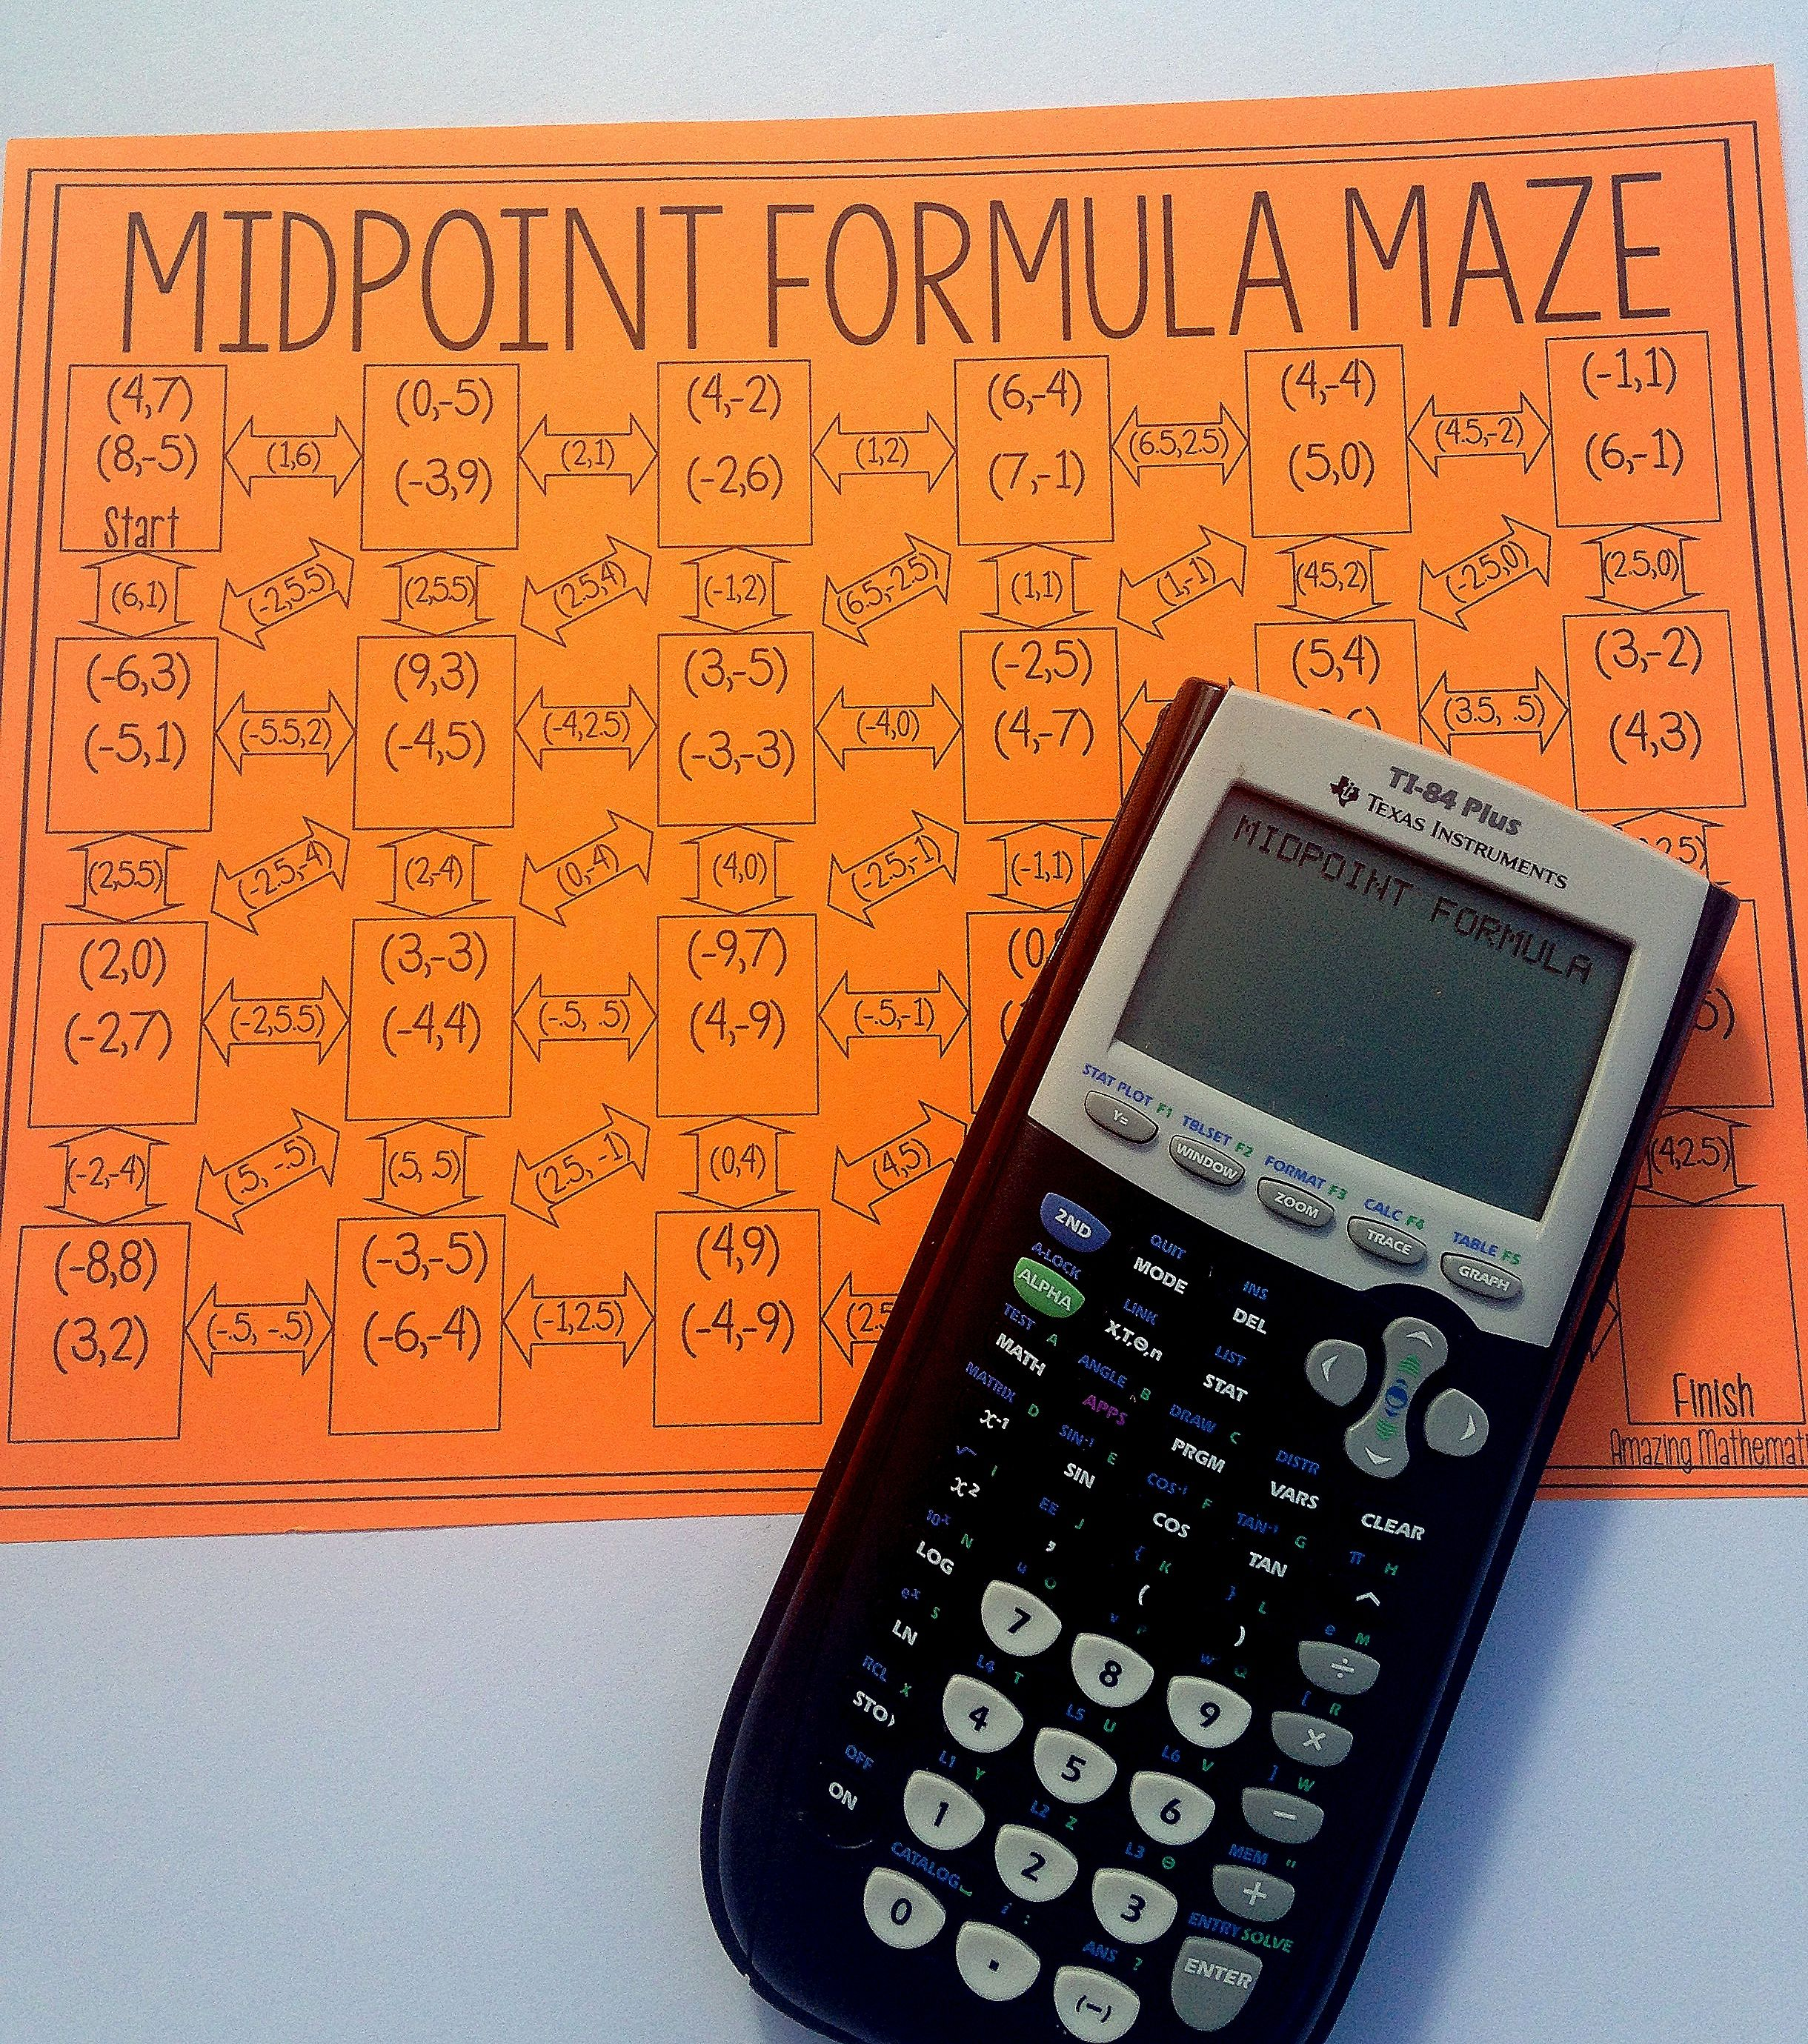 Worksheet 1 Writing And Balancing Formula Equations Answers Pdf Midpoint Formula Maze  High School Geometry Geometry And Worksheets Patterns In Math Worksheets Pdf with Decimal Worksheets For 4th Grade Excel Midpoint Formula Maze Population Density Map Worksheet Excel